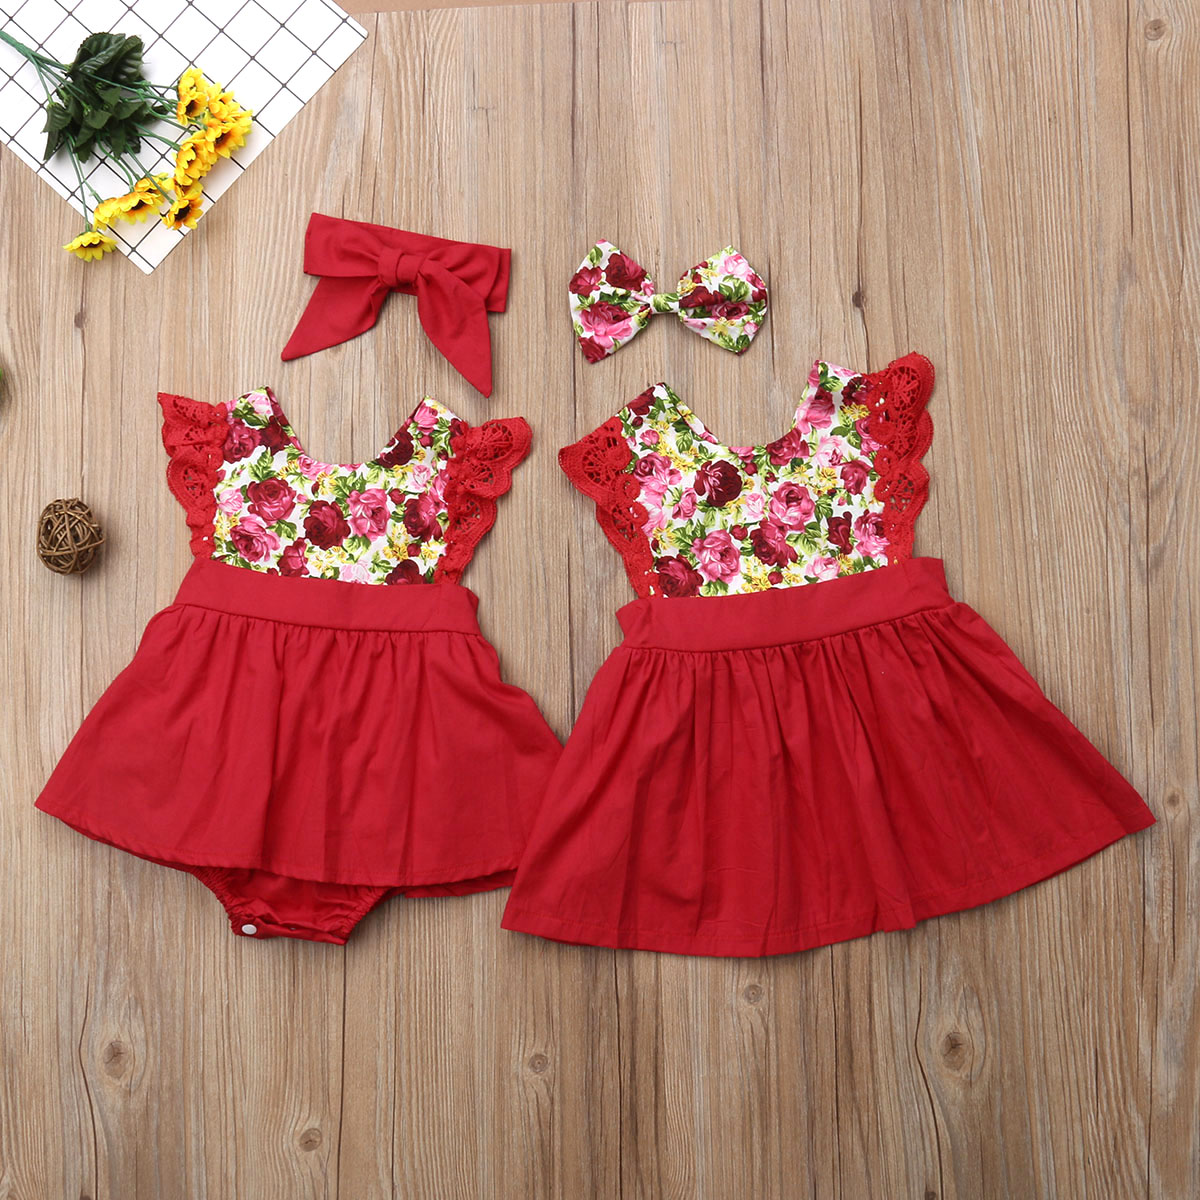 Mother & Kids Hearty Adorable Kid Baby Girl Sisters Matching Romper Dress Floral Print Lace Outfit Clothes Sleeveless Fashion Purple Family Outfits Numerous In Variety